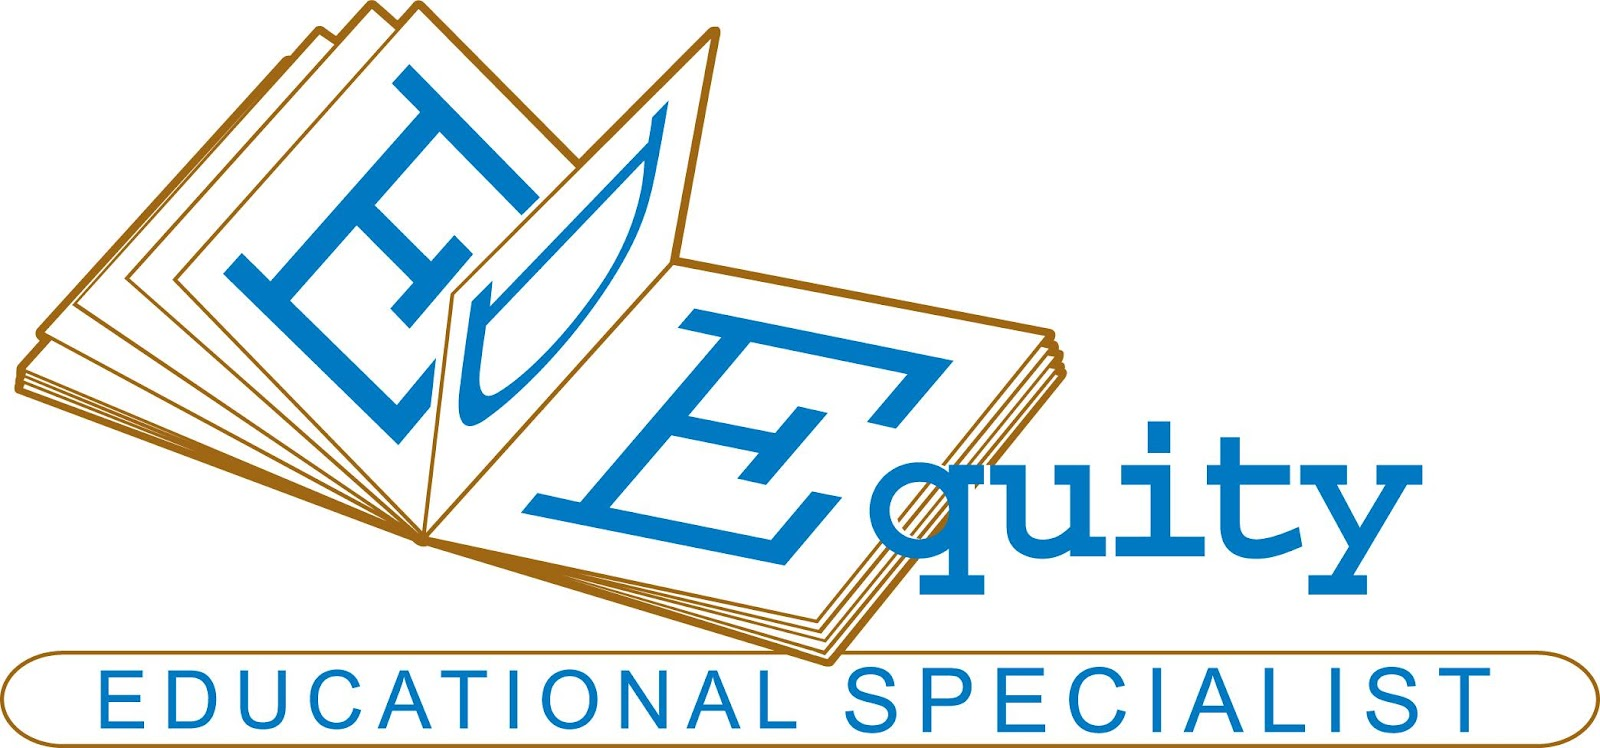 Equity Specialist logo 042110